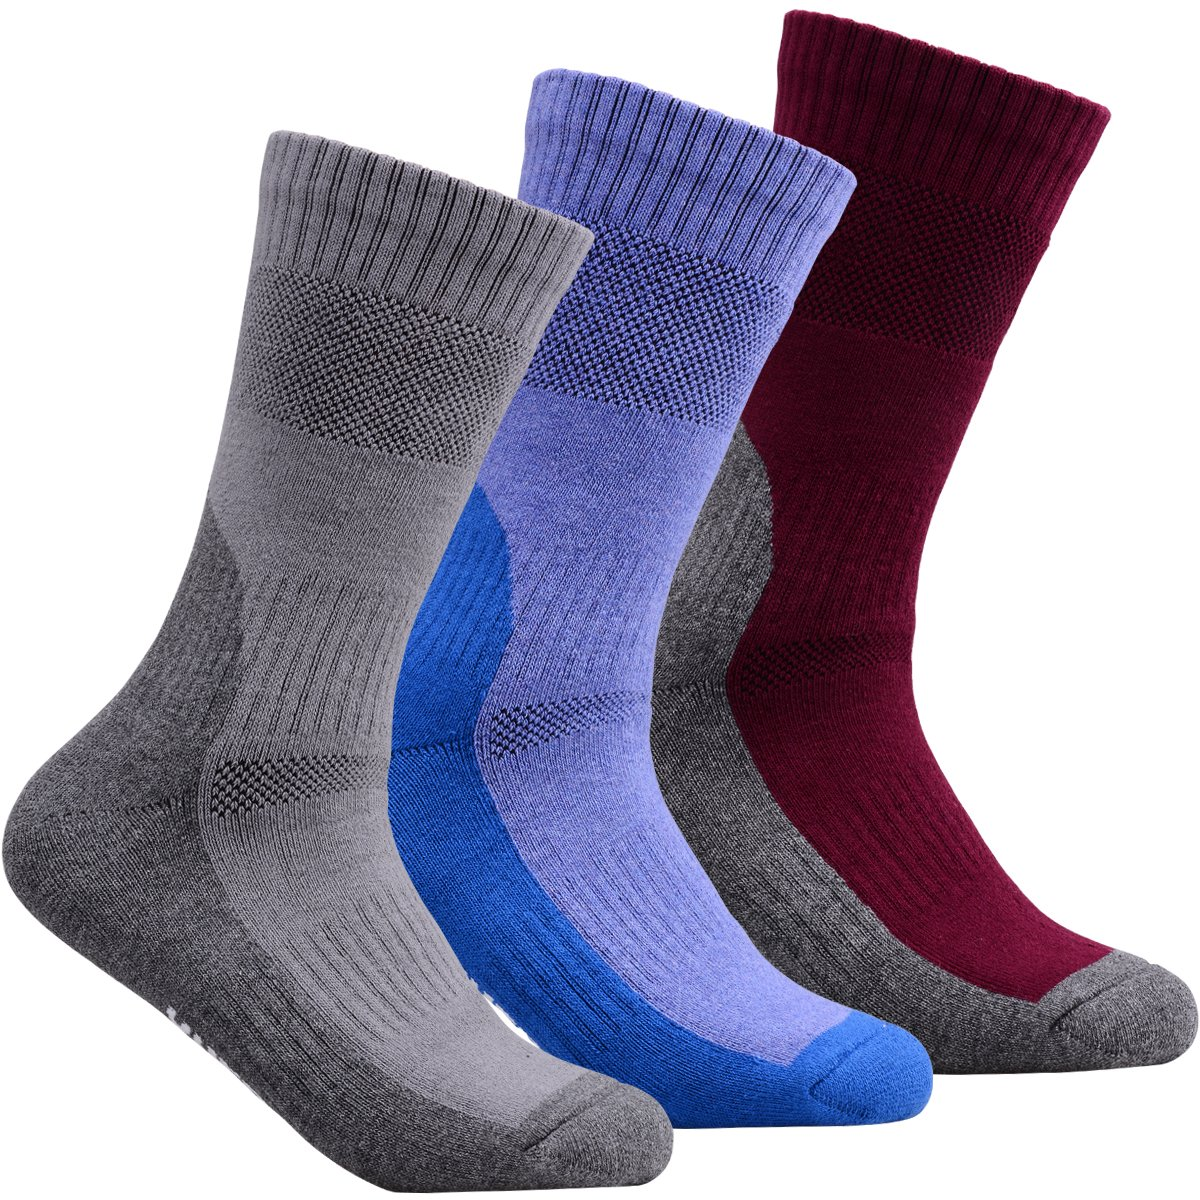 YUEDGE Women's Performance Wicking Cushion Crew Socks For Outdoor Sport Hiking hw18053pca